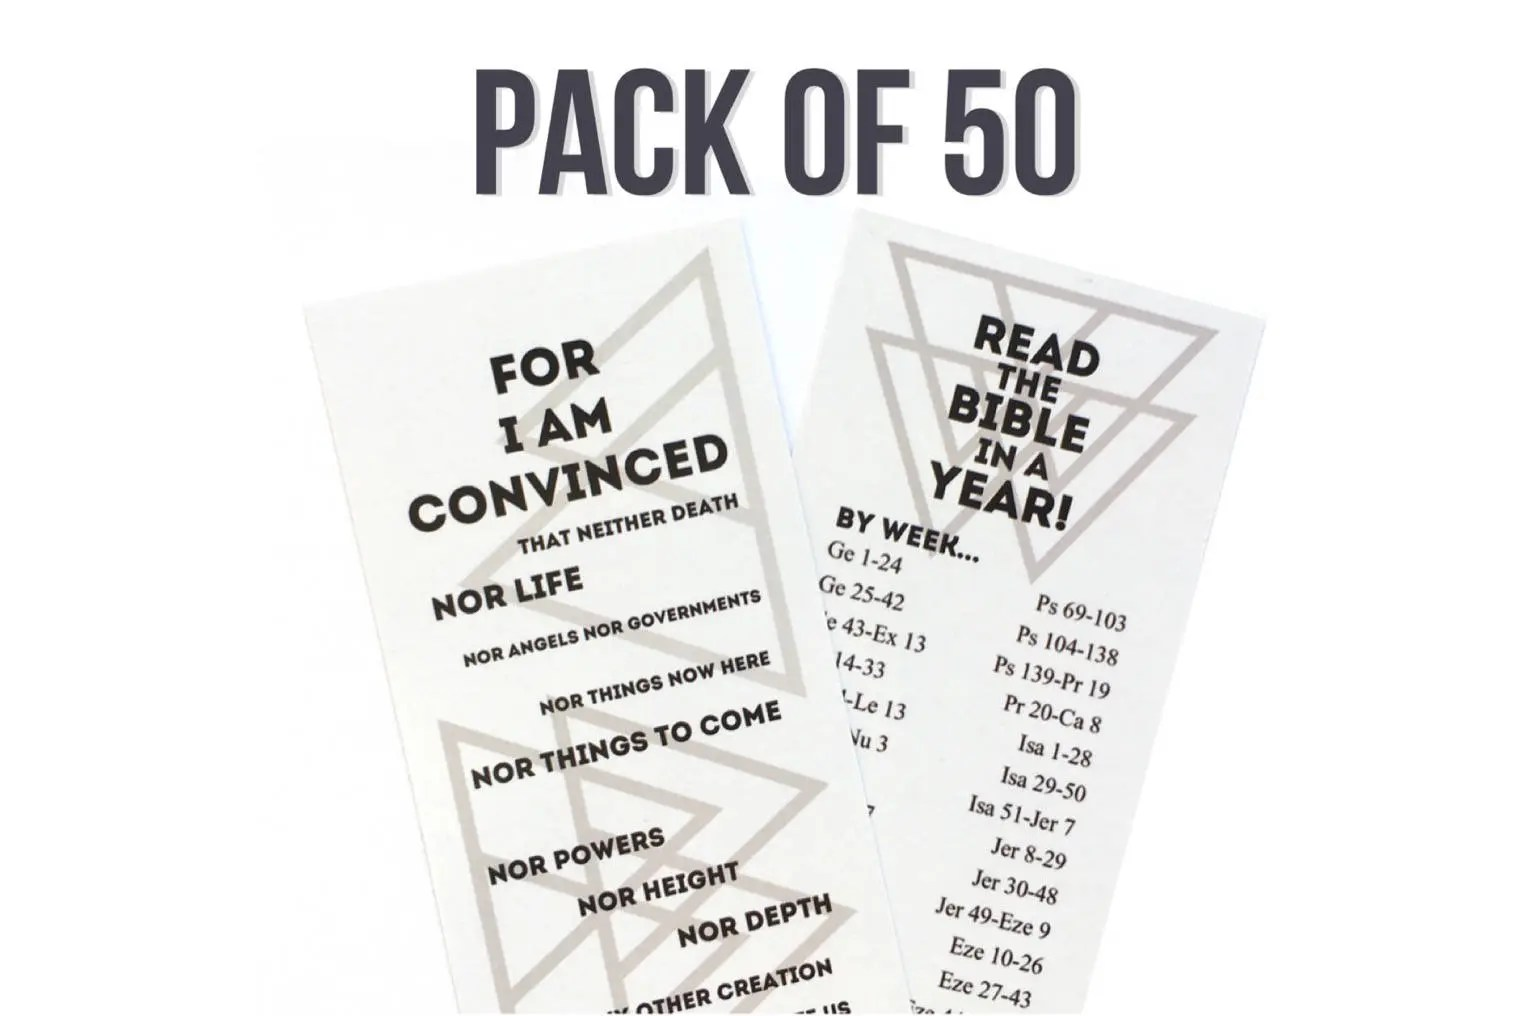 Pack of 50 For I Am Convinced Bookmarks Read the Bible in a